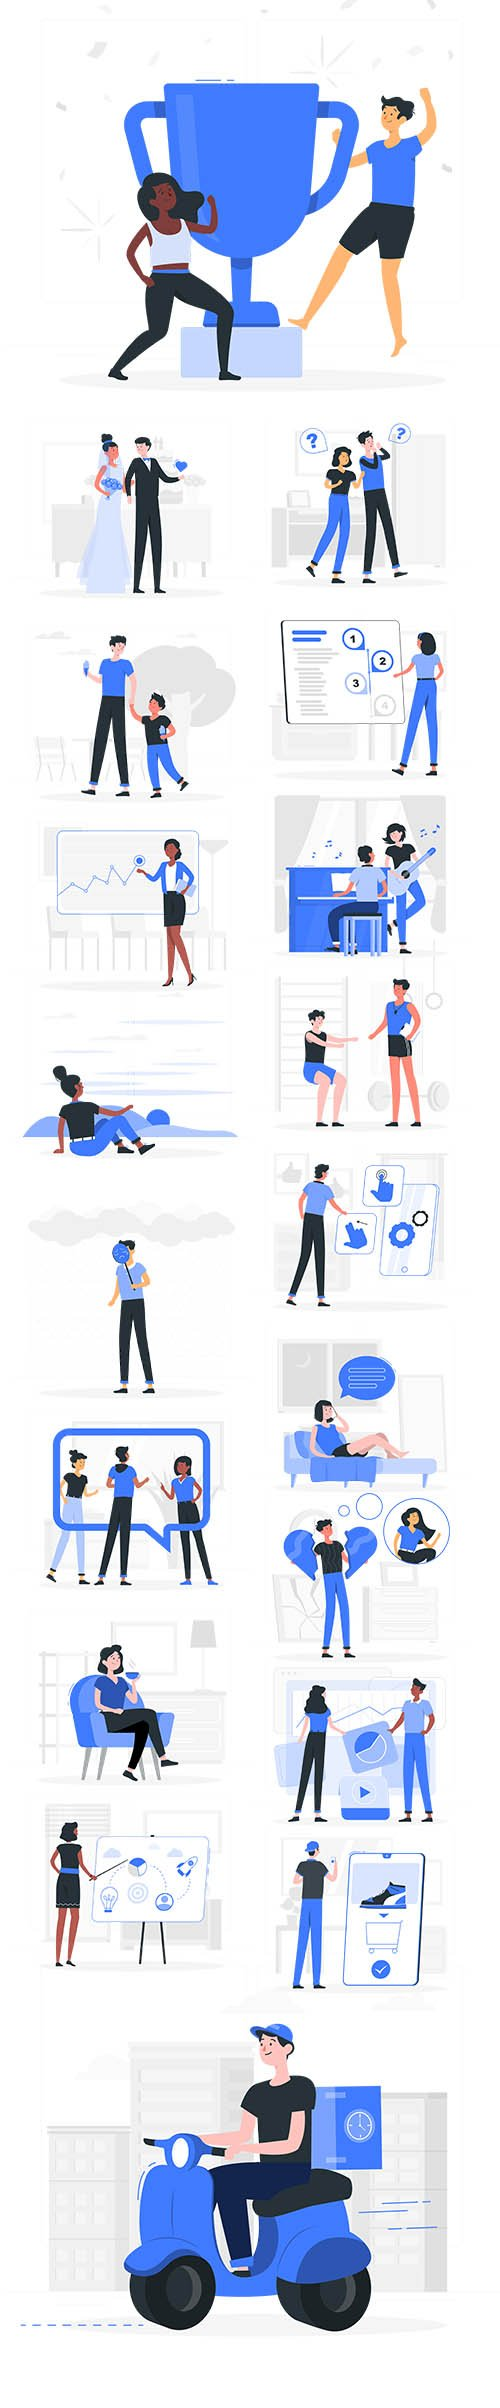 Vector People Live Situation Illustrations Vol 4